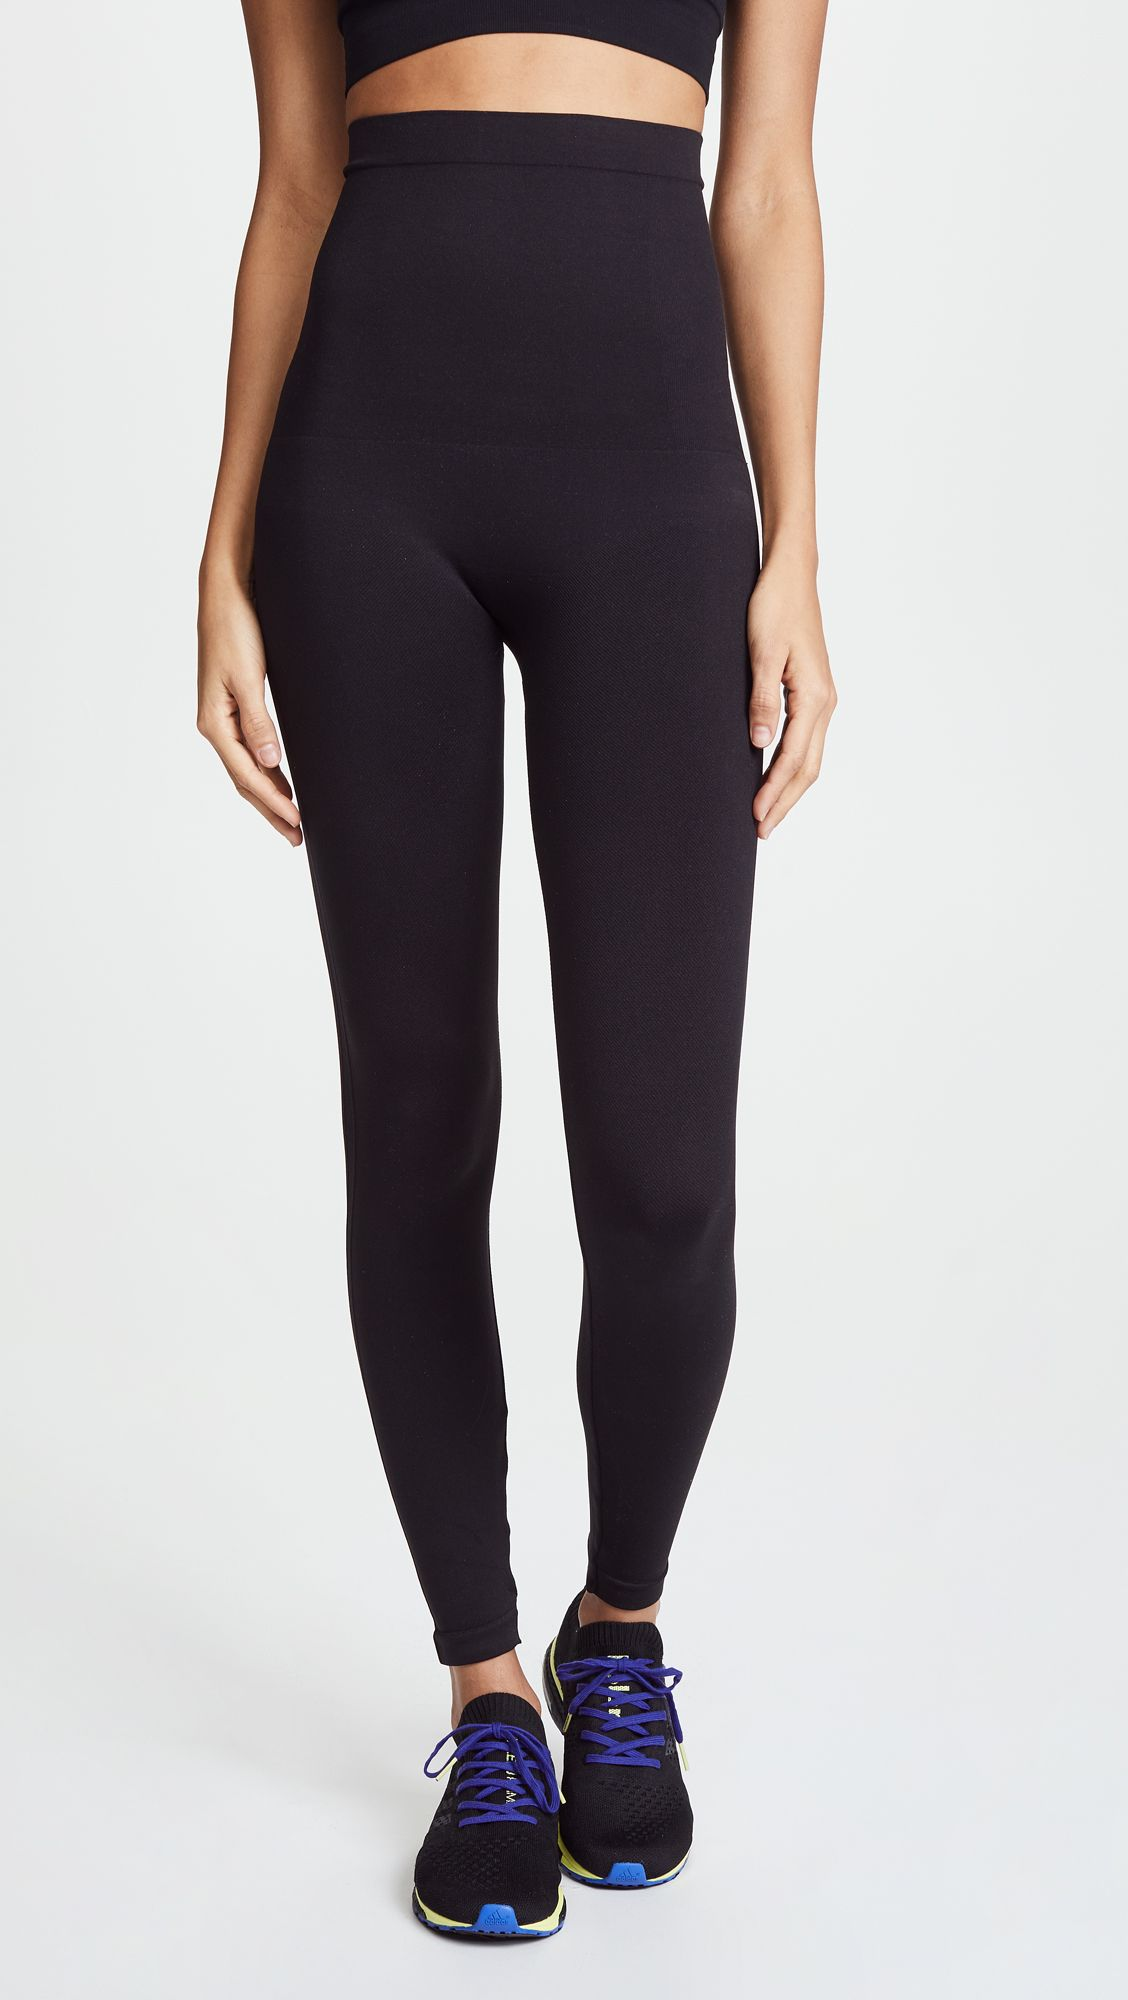 This Is the Most In-Demand Legging Brand Right Now 2